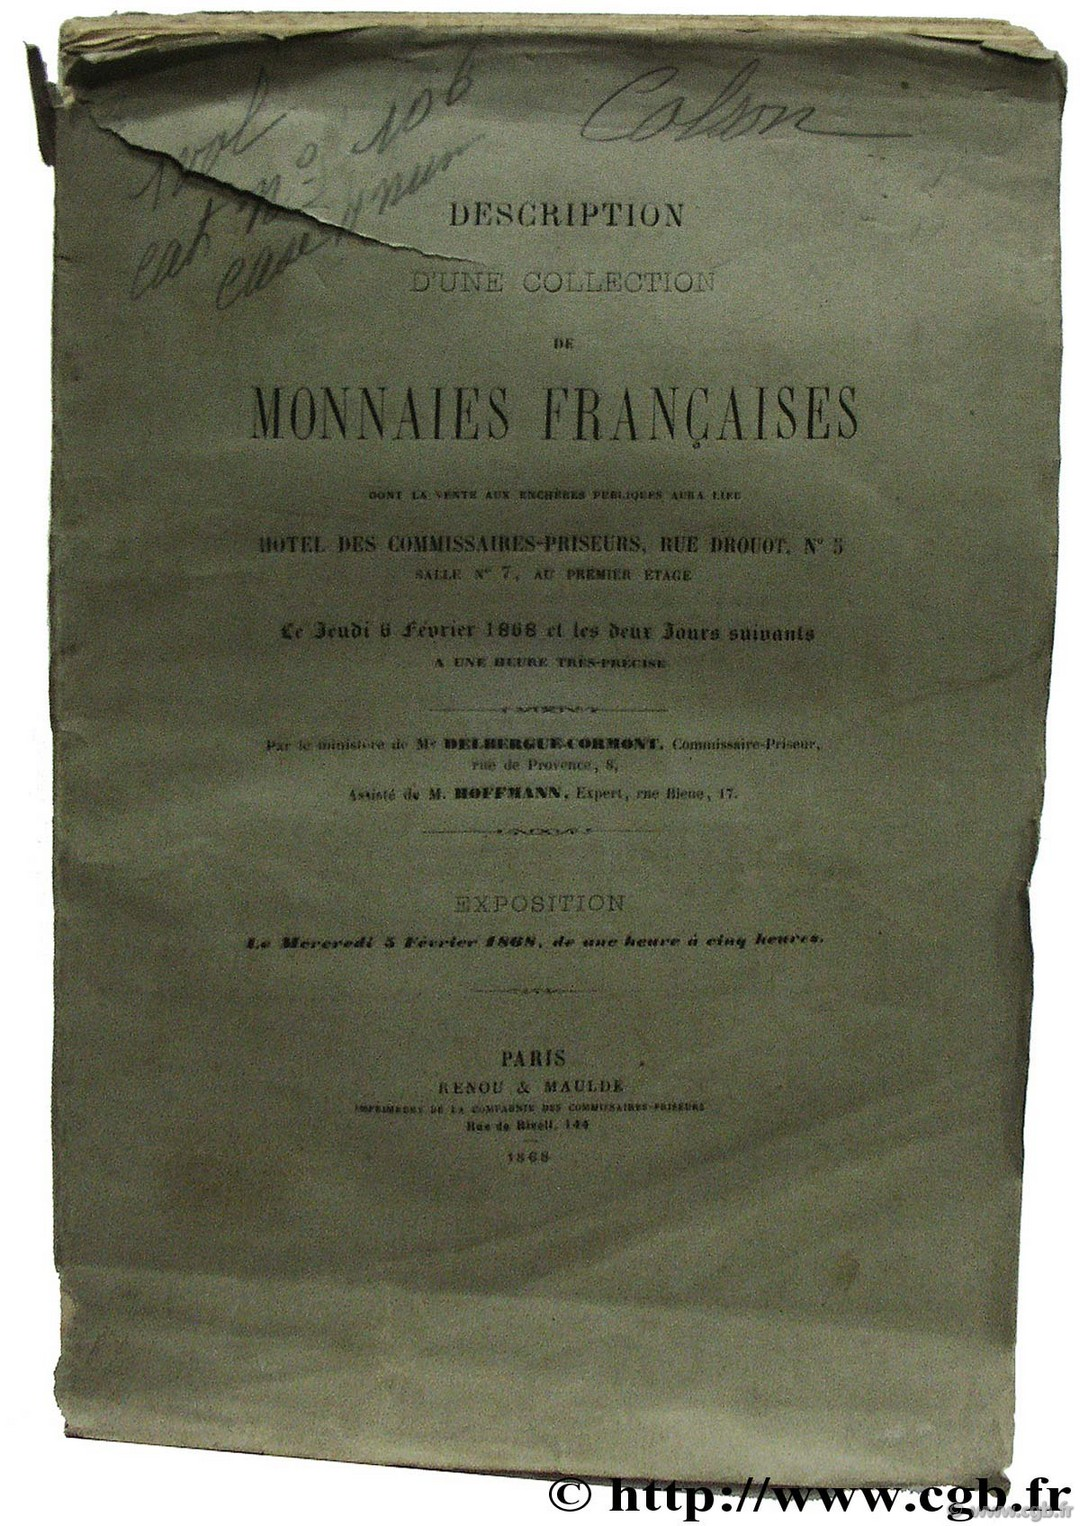 Description d une collection de monnaies françaises [collection Colson]